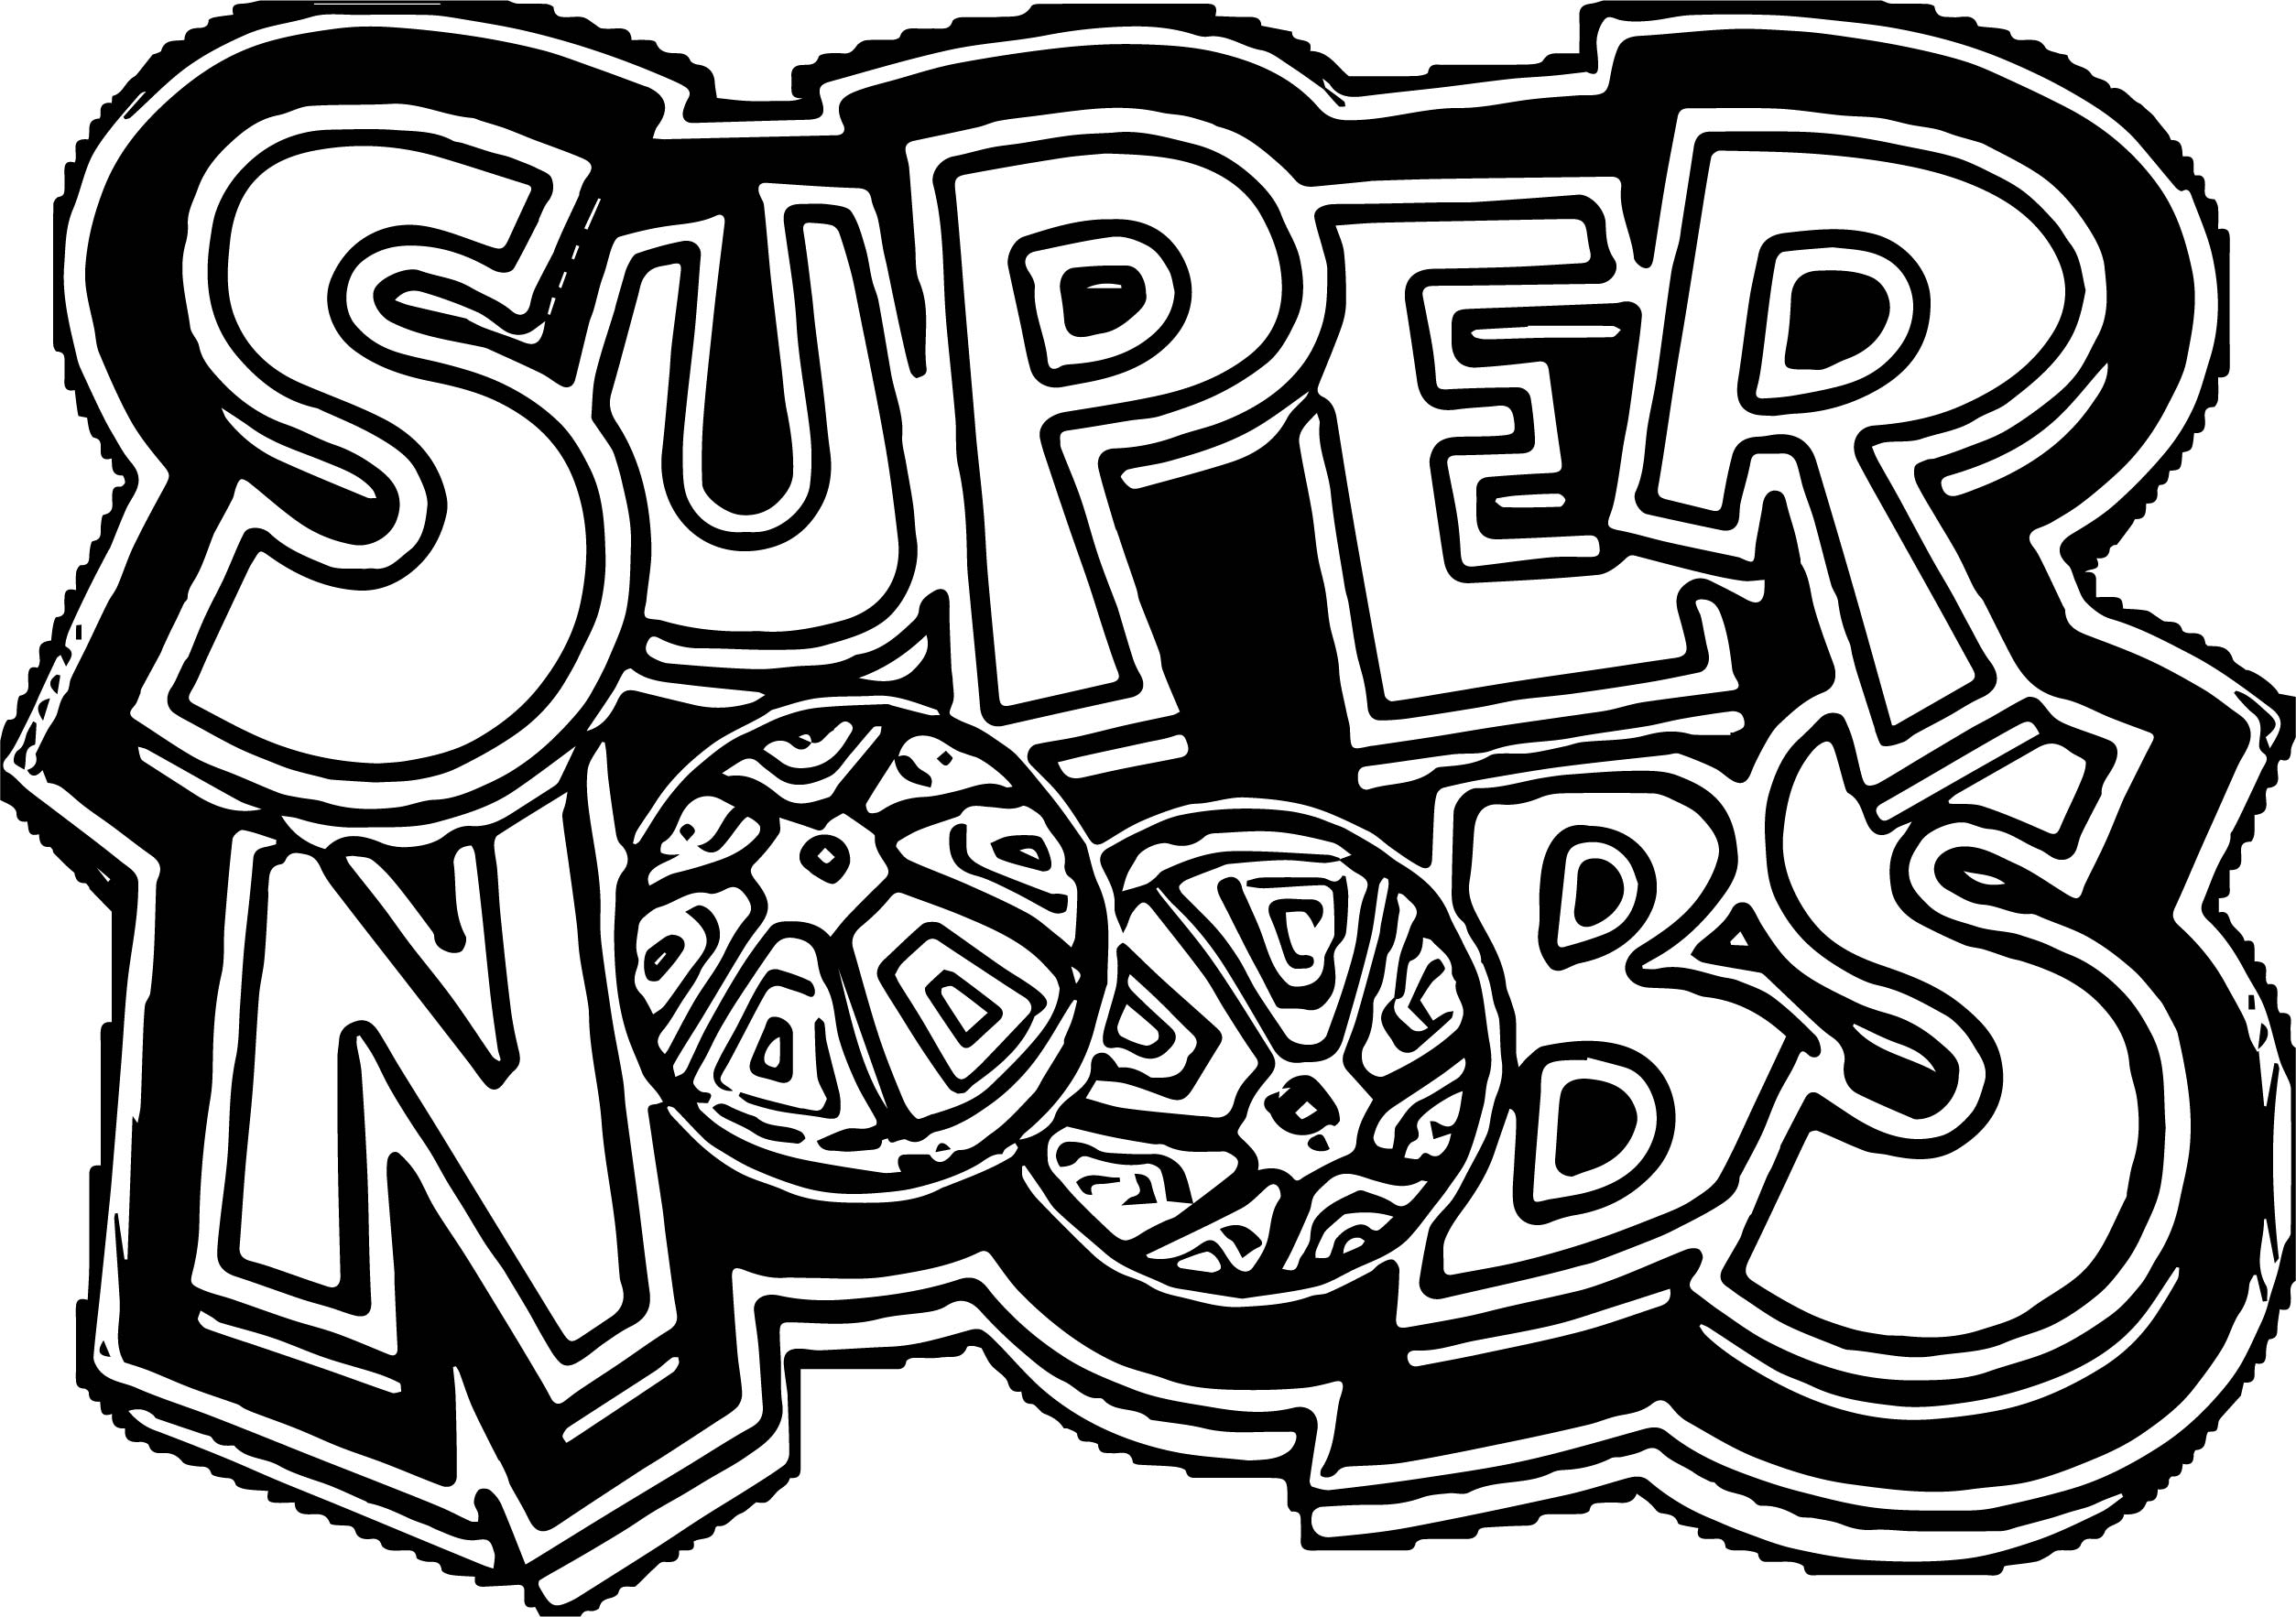 supernoobs logo coloring page wecoloringpage